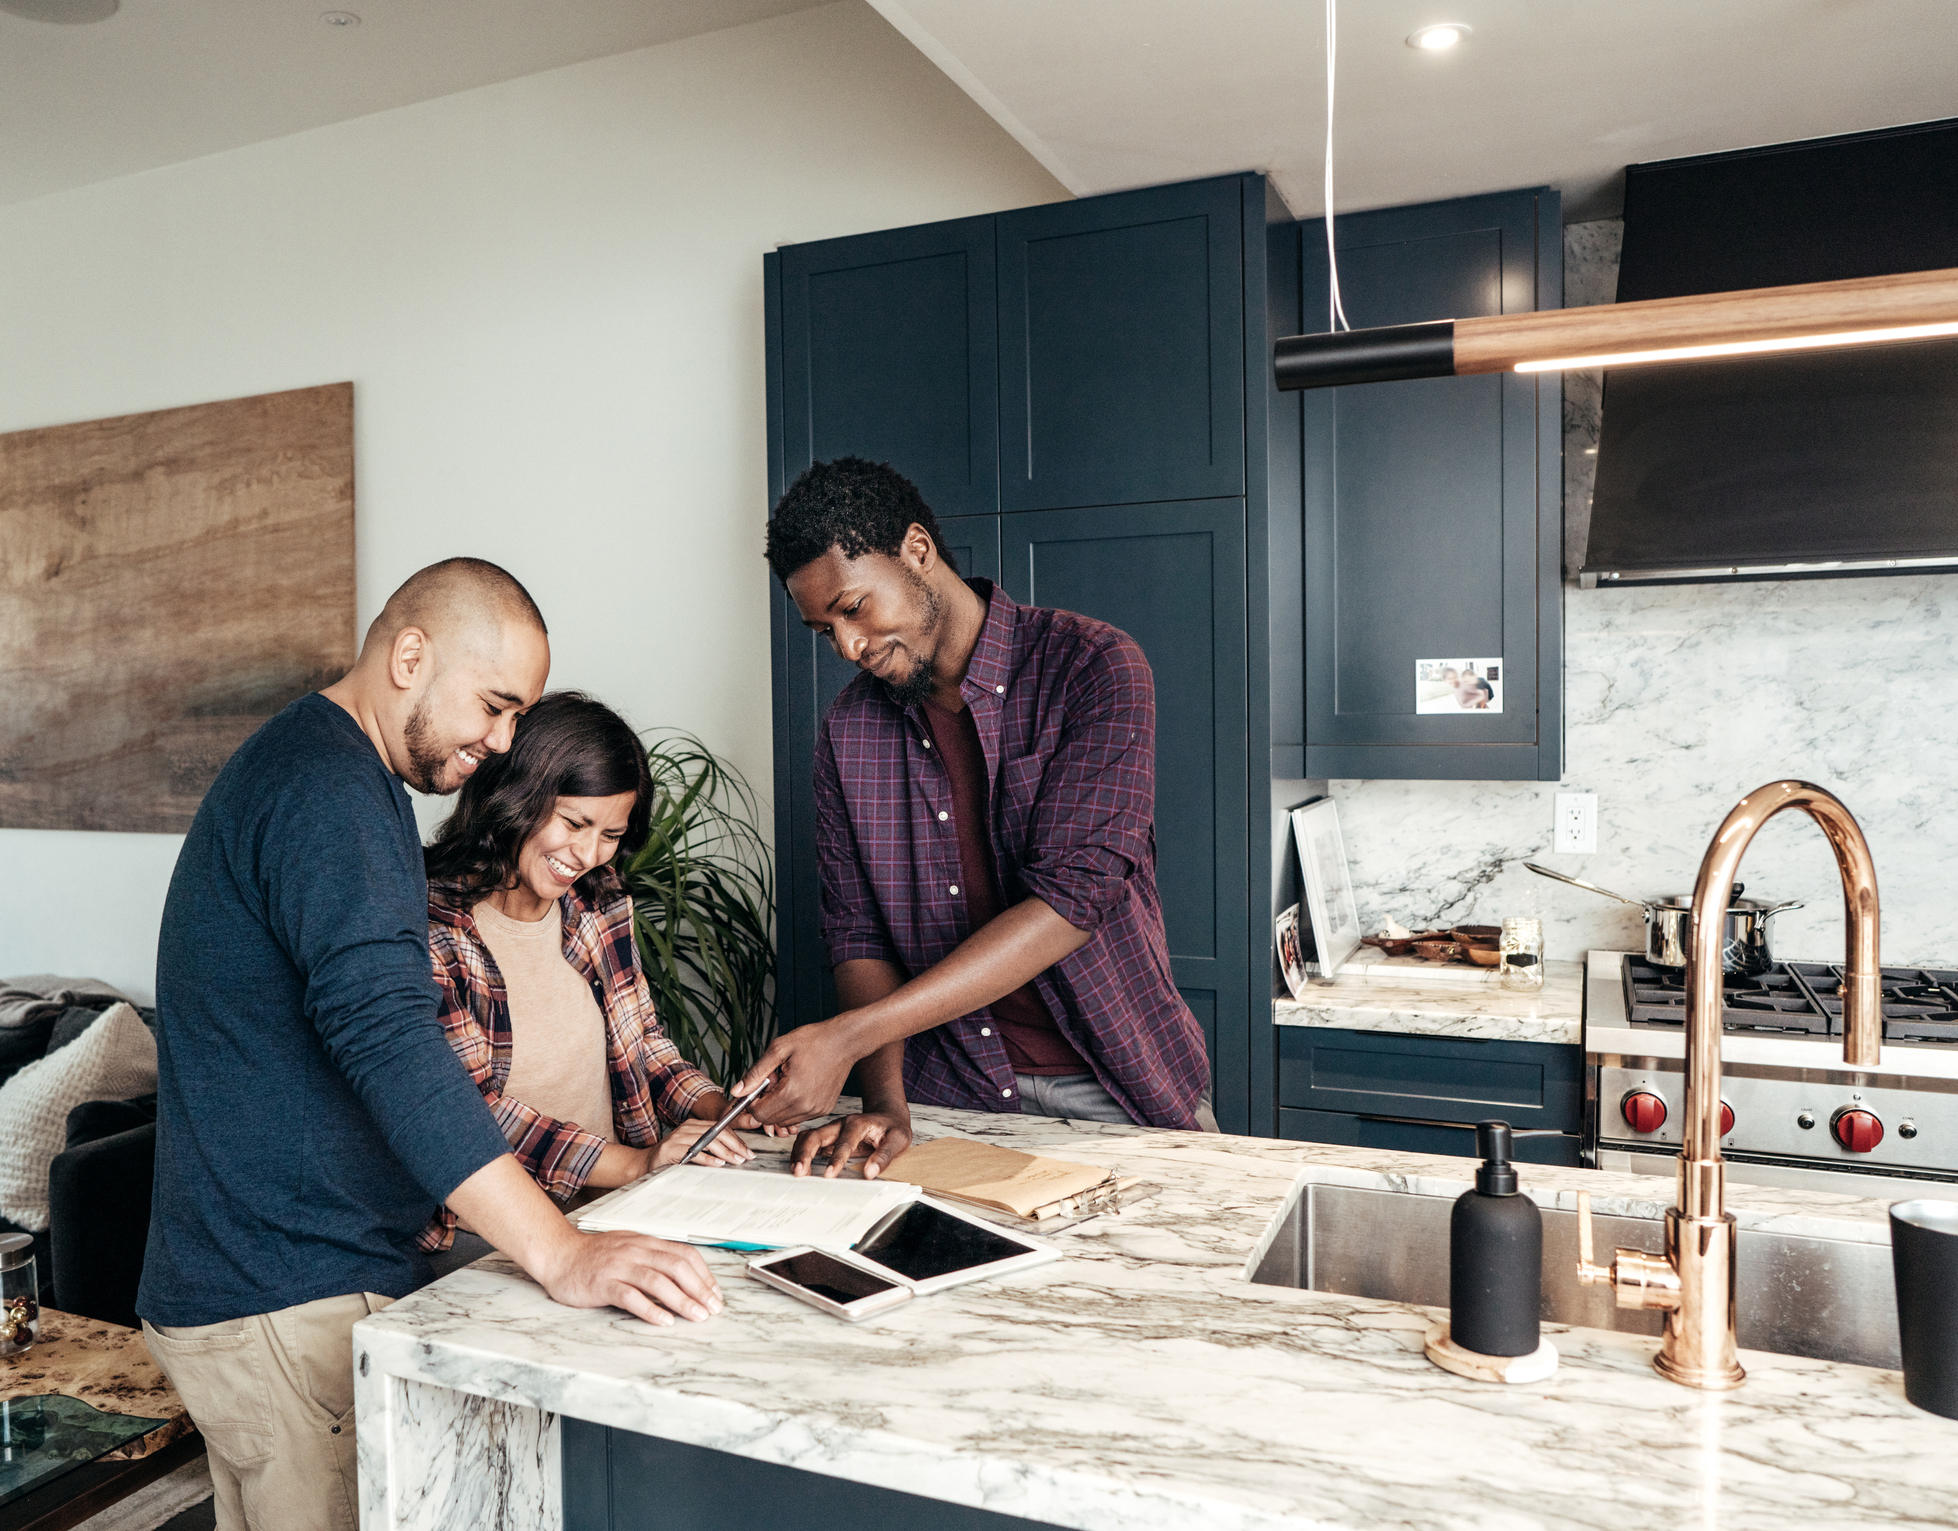 stock photo of realtor showing a couple paperwork while standing in a new kitchen